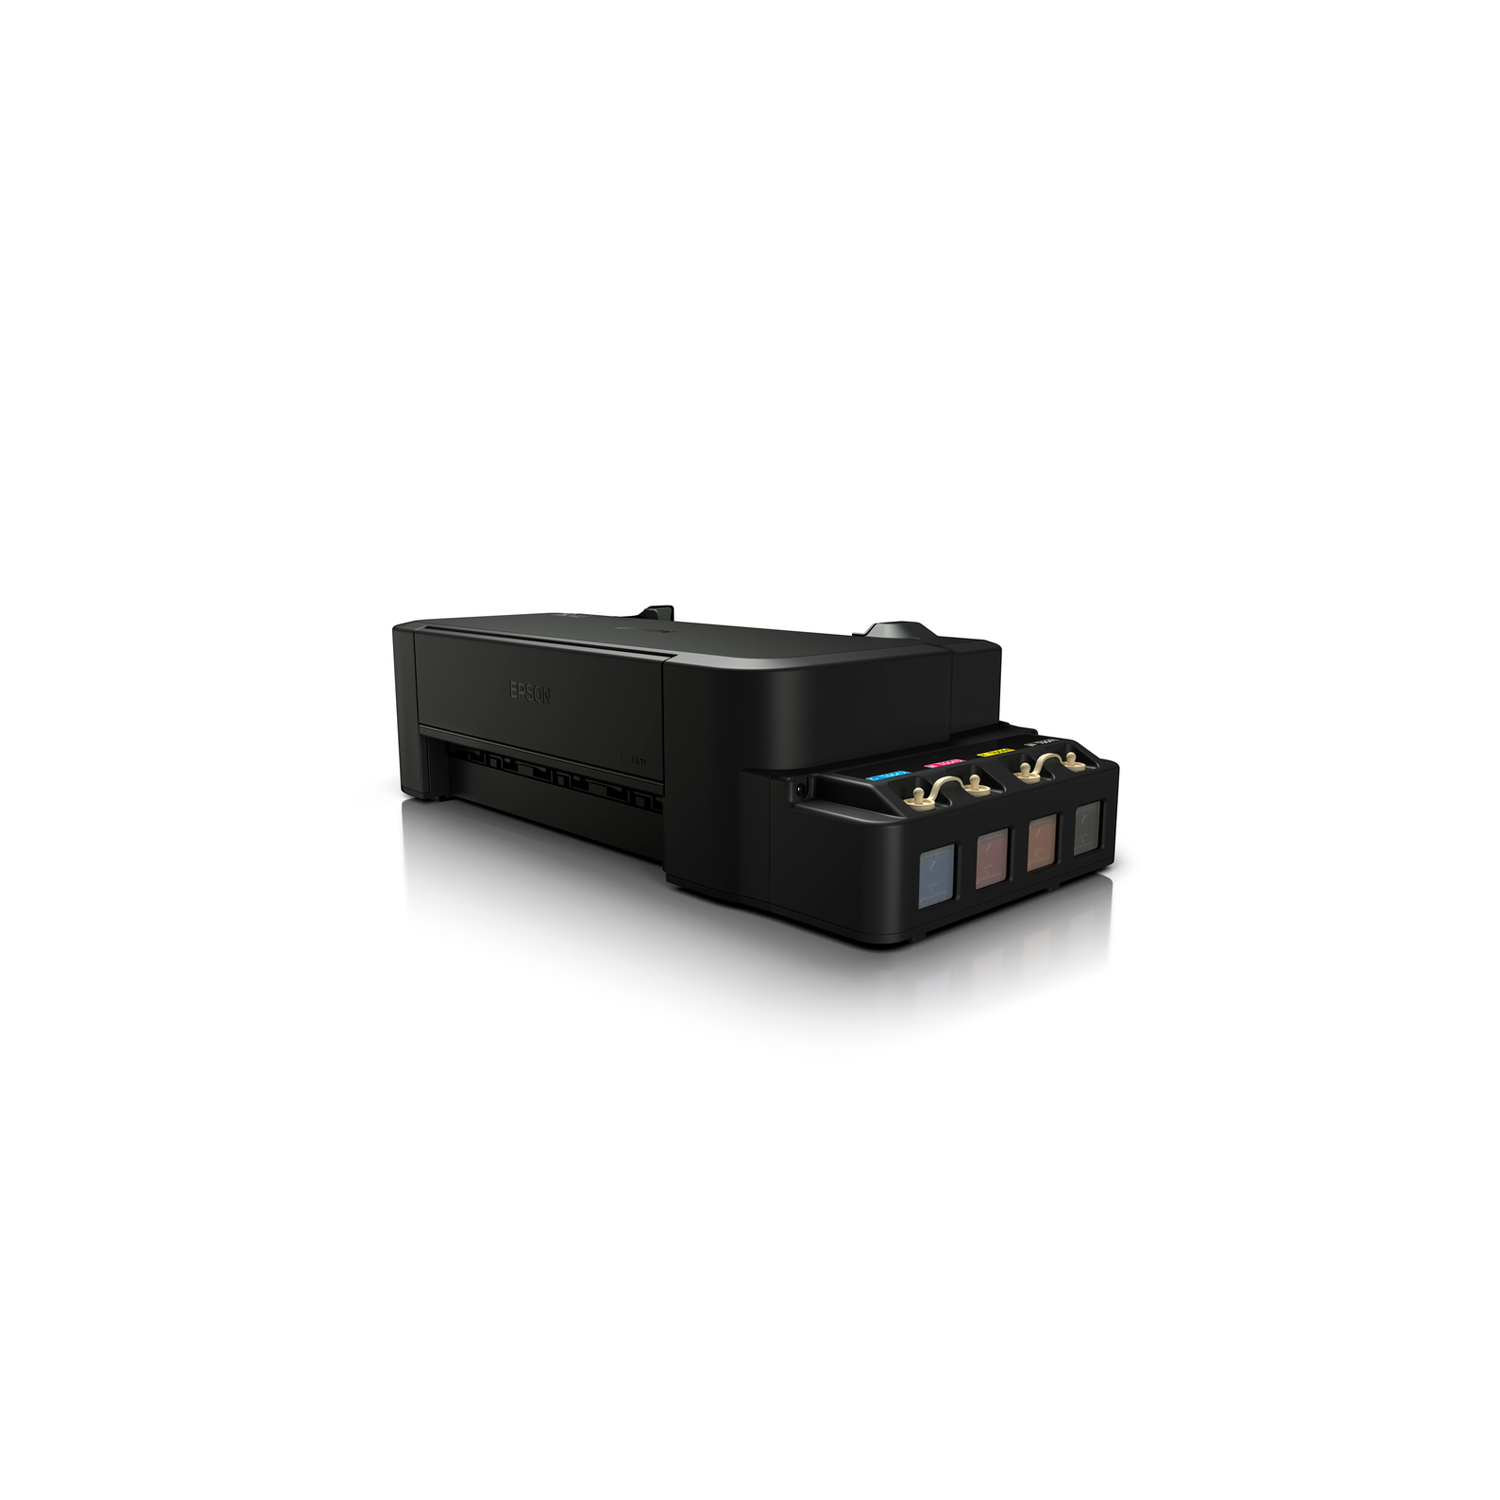 Epson L120 Ink Tank/4Color Printer